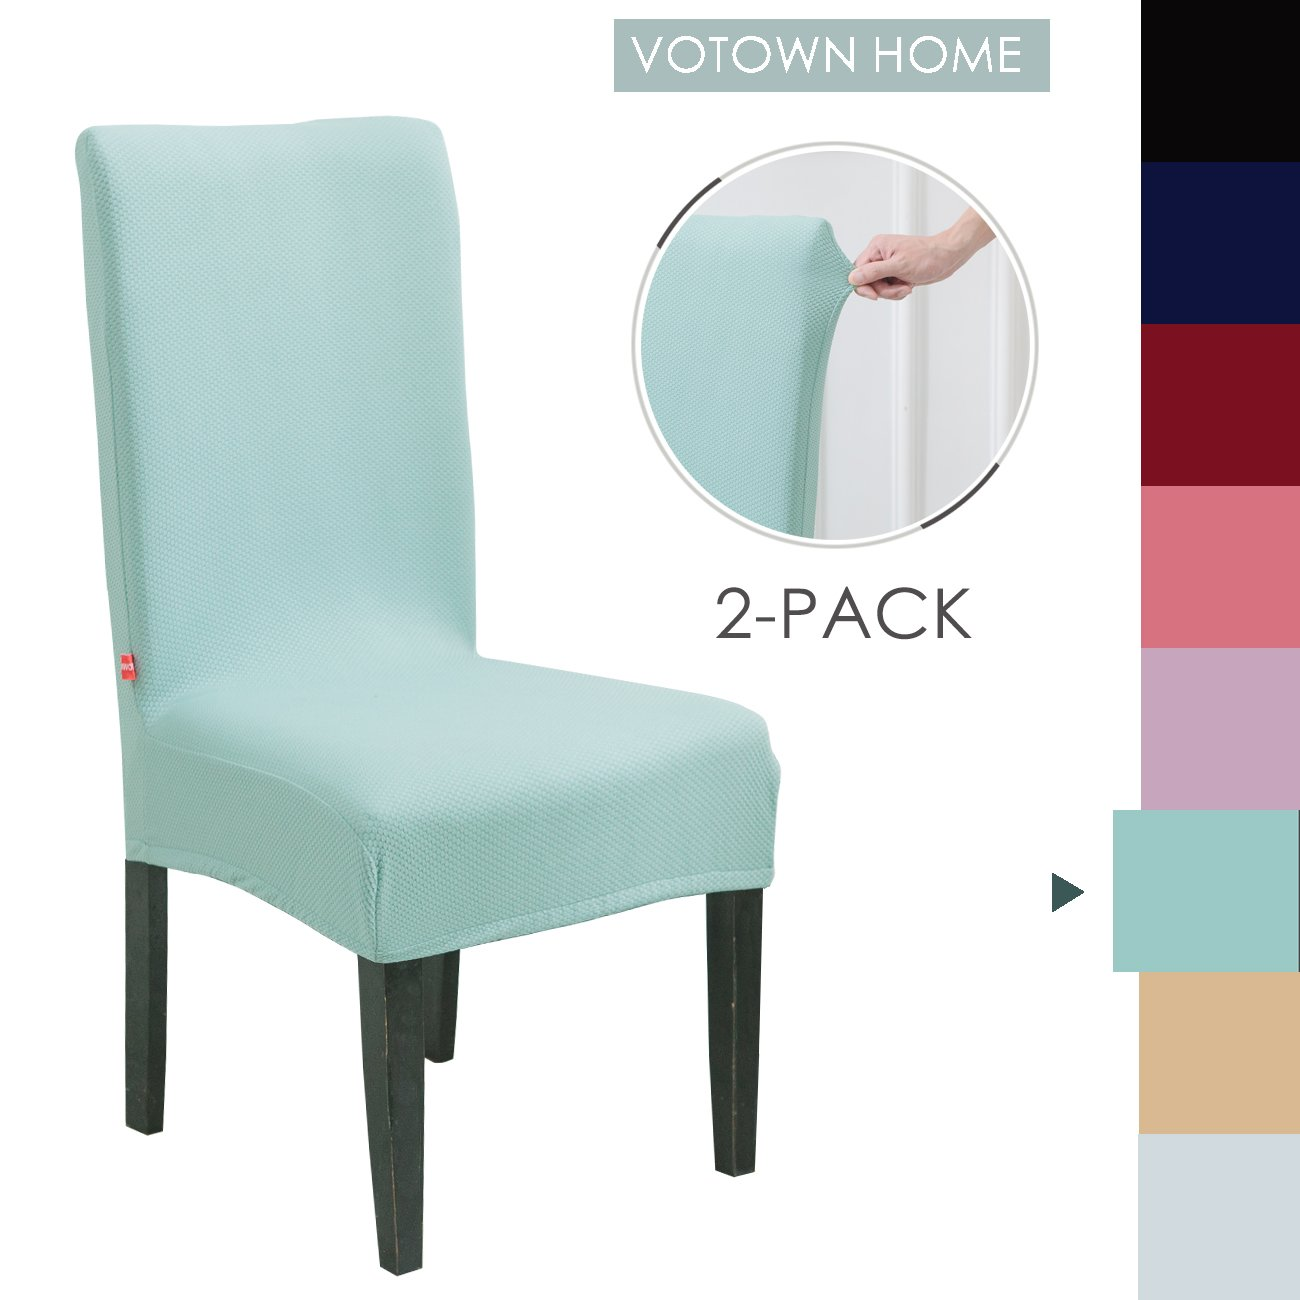 Votown Home Dining Room Chair Slipcovers Spandex Stretch fabric Home Decor Set of 2, Green